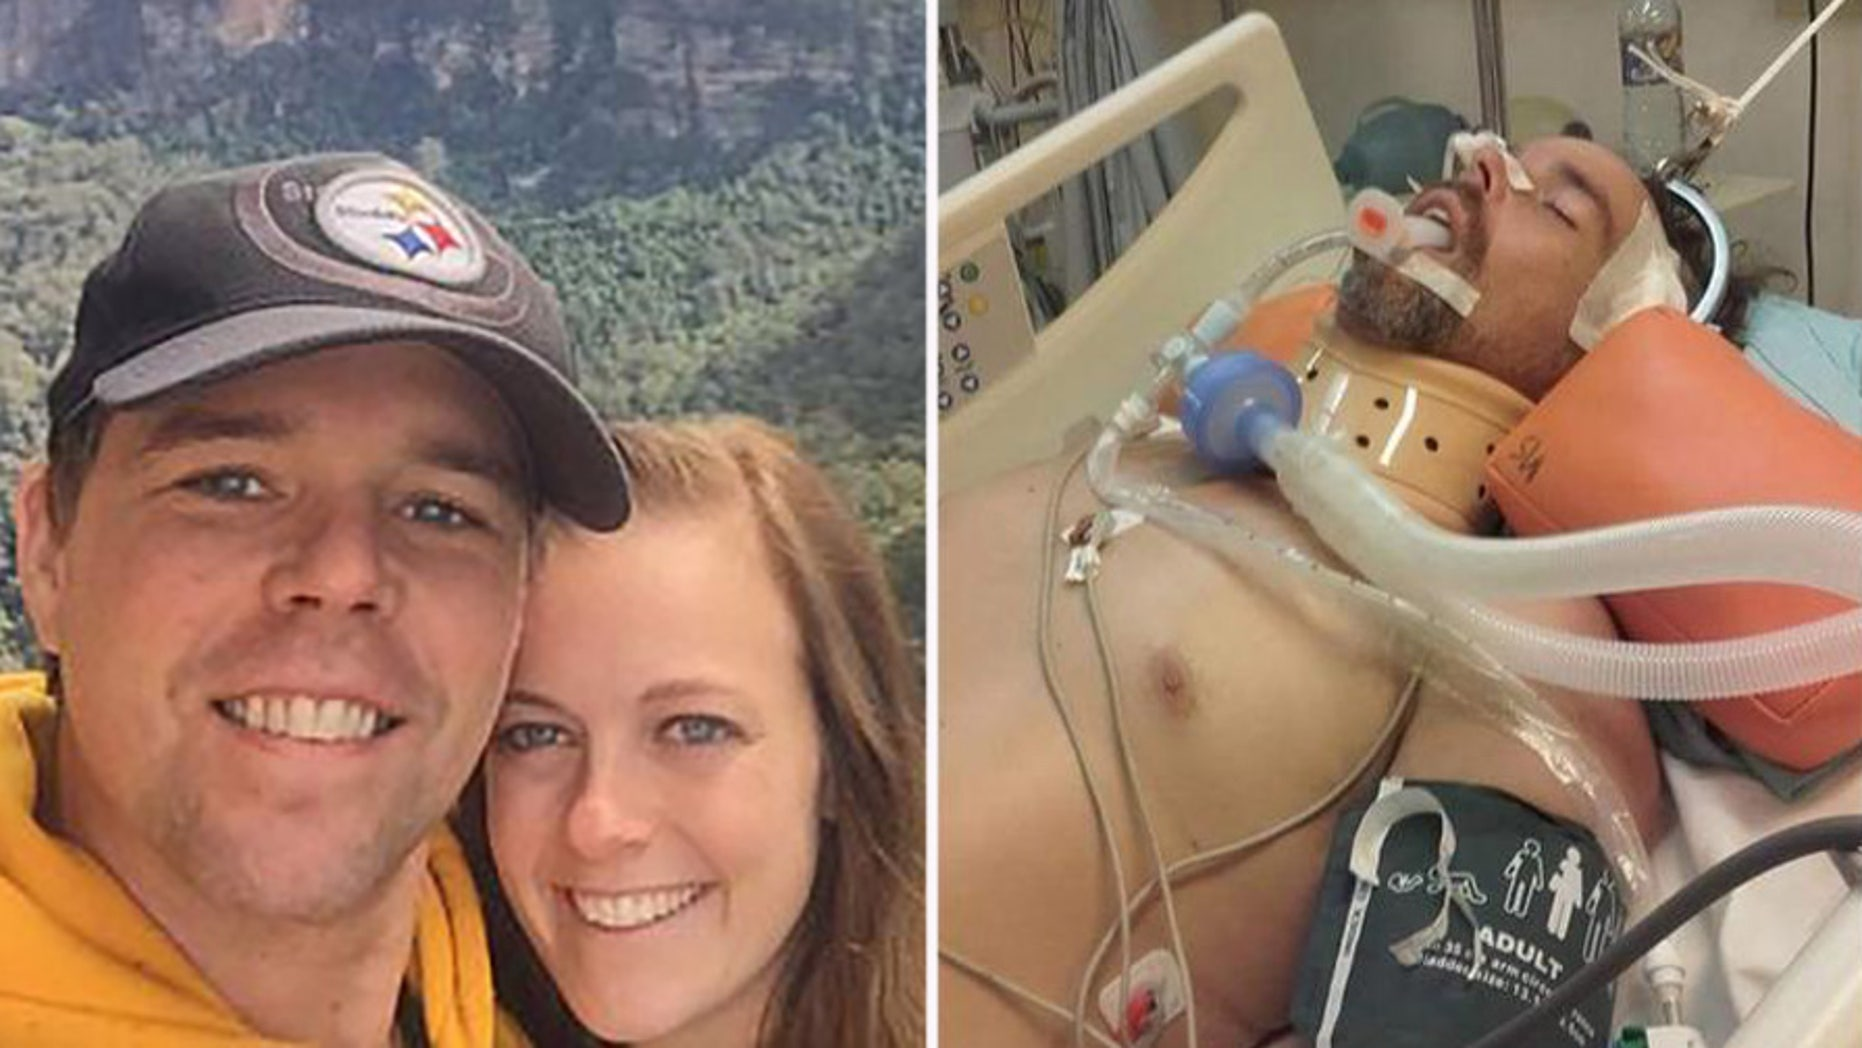 Jeff Swedenhjelm, 40, is paralyzed from the chest down after falling 33 feet from a roof.